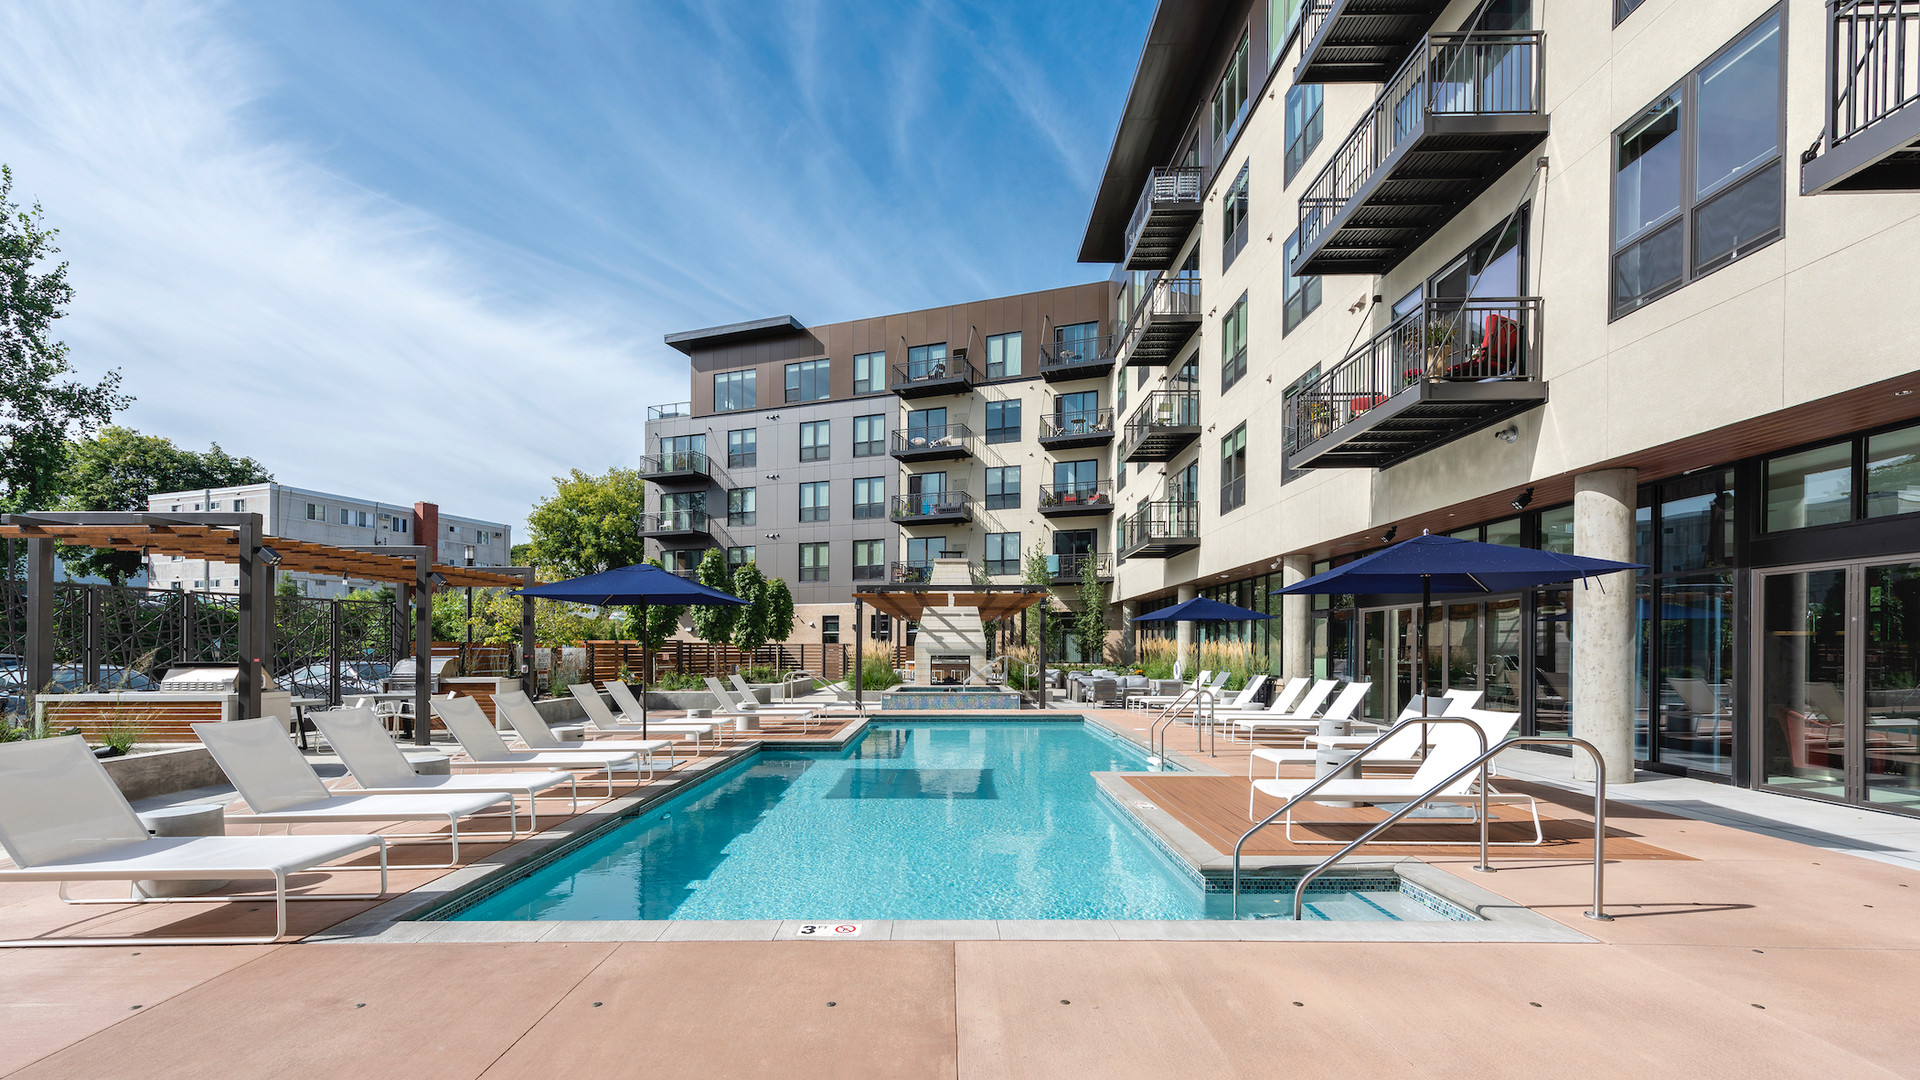 The outdoor swimming pool area at Parkway 25 in St. Louis Park, MN, designed by DJR Architecture.